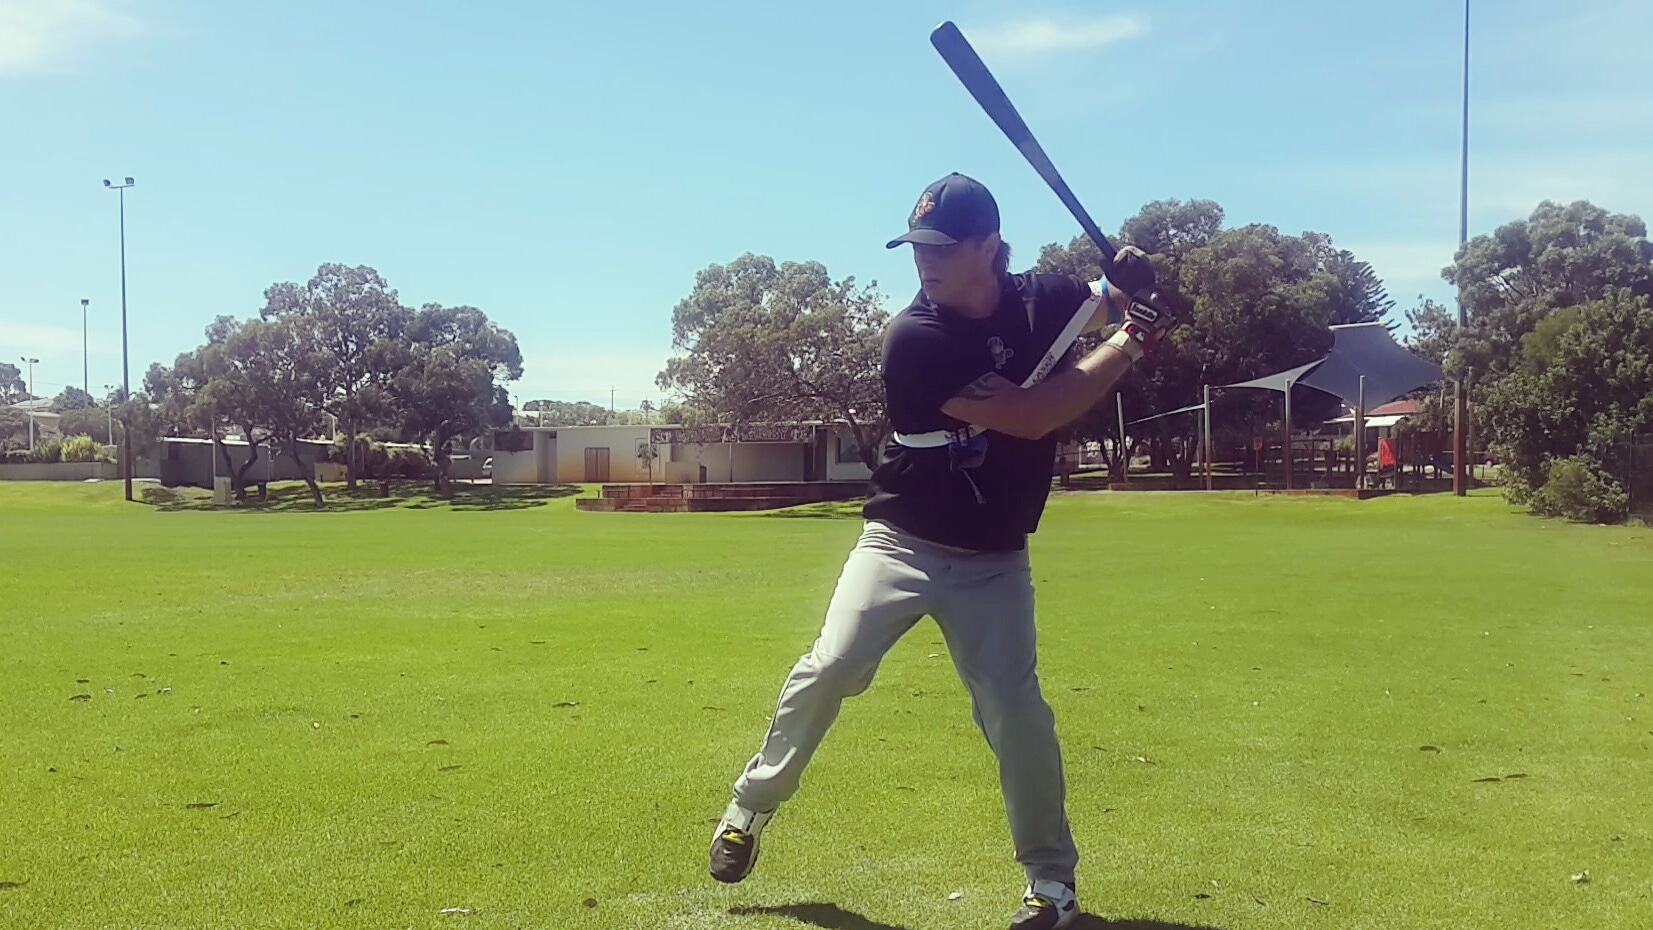 improve hitting mechanics